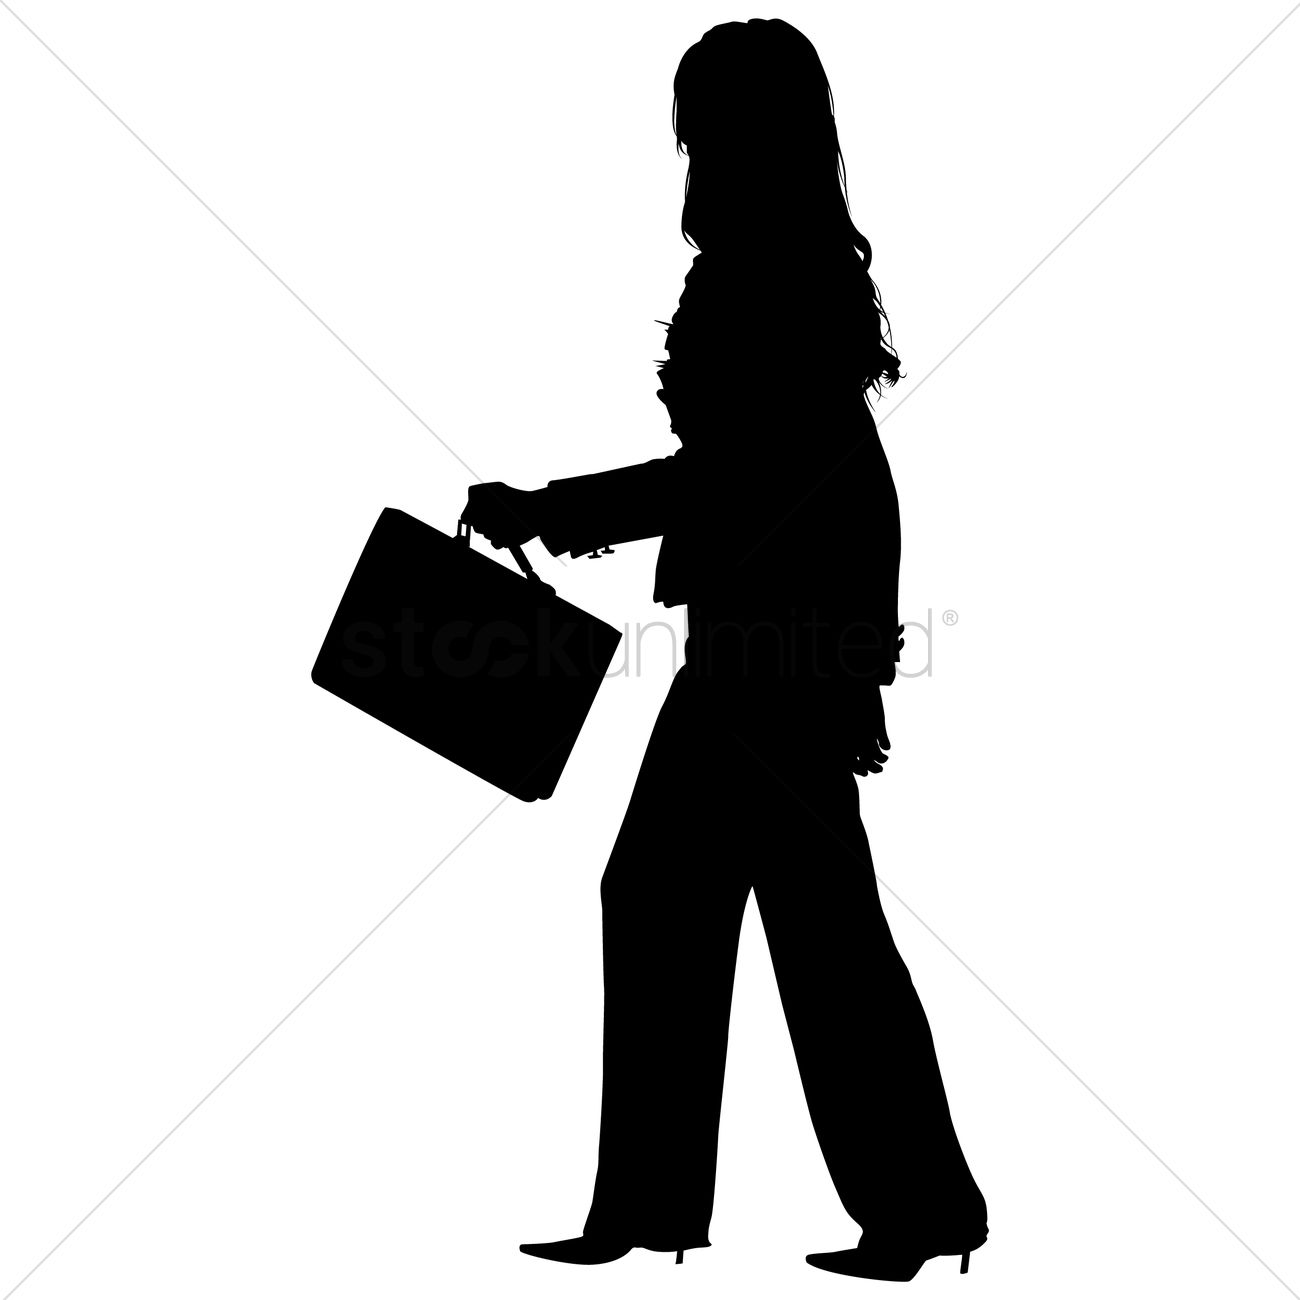 Briefcase clipart corporate woman. Silhouette business at getdrawings